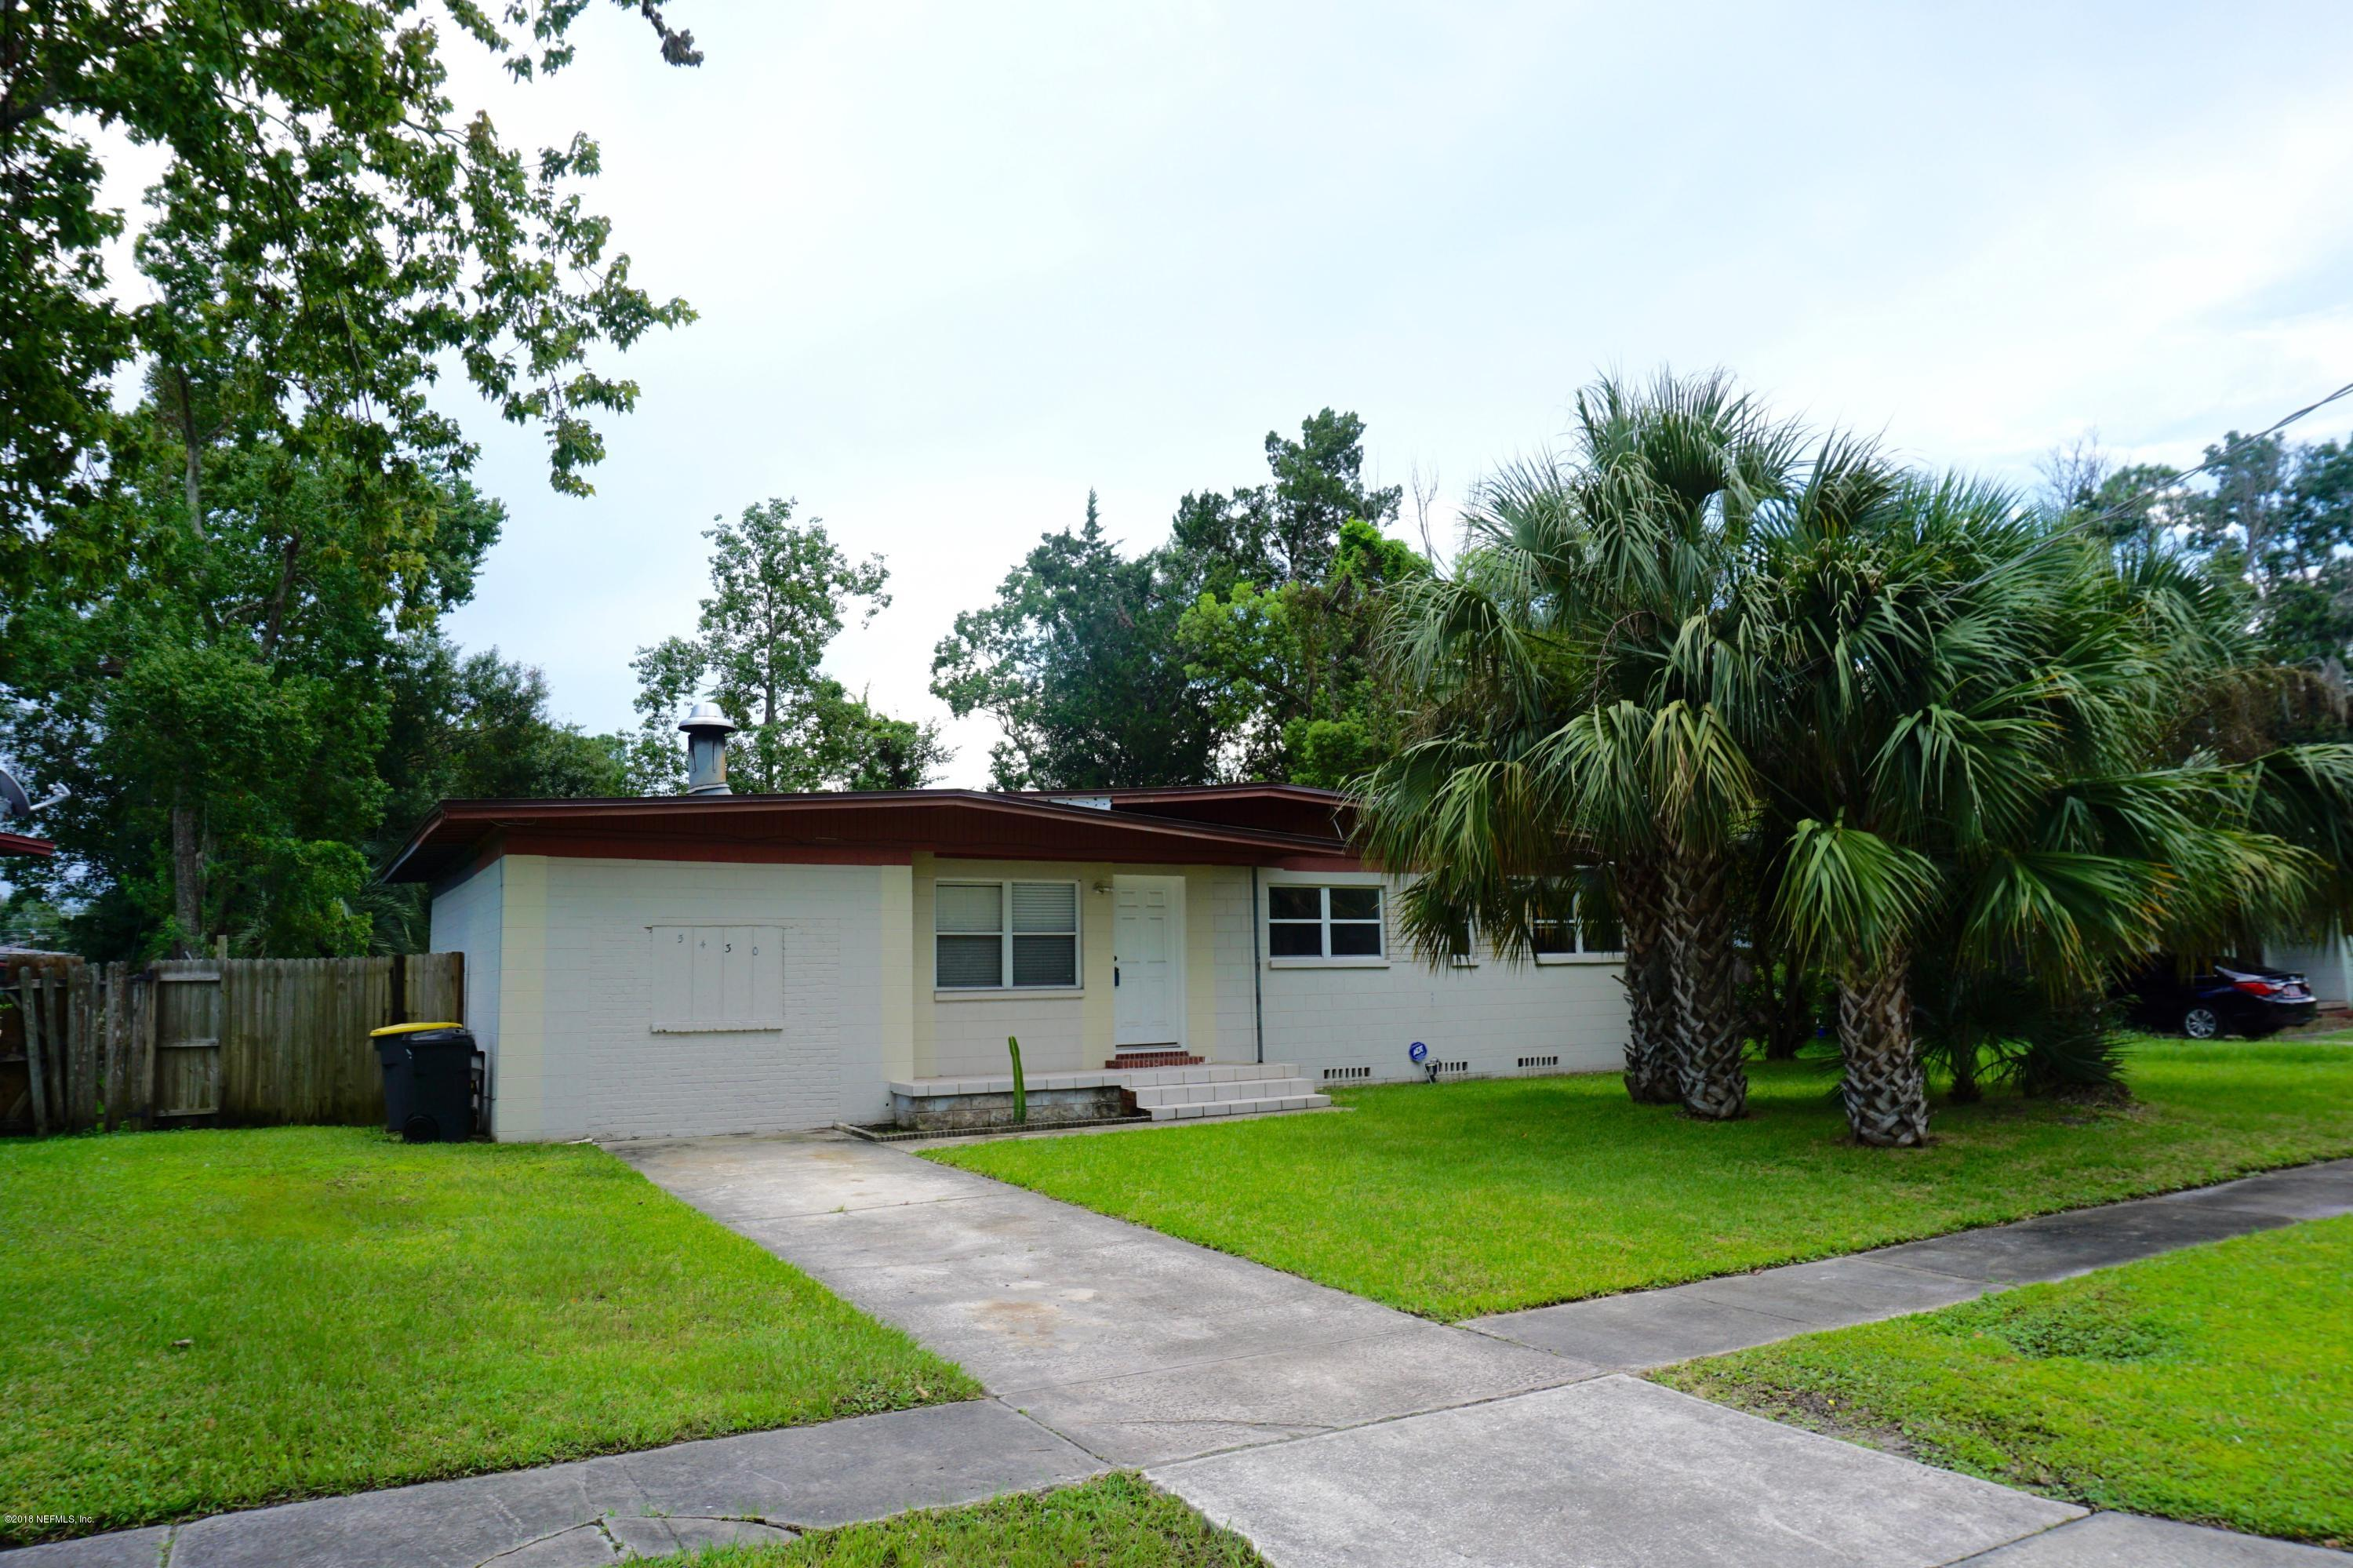 5430 SANTA MONICA, JACKSONVILLE, FLORIDA 32207, 3 Bedrooms Bedrooms, ,2 BathroomsBathrooms,Residential - single family,For sale,SANTA MONICA,954291